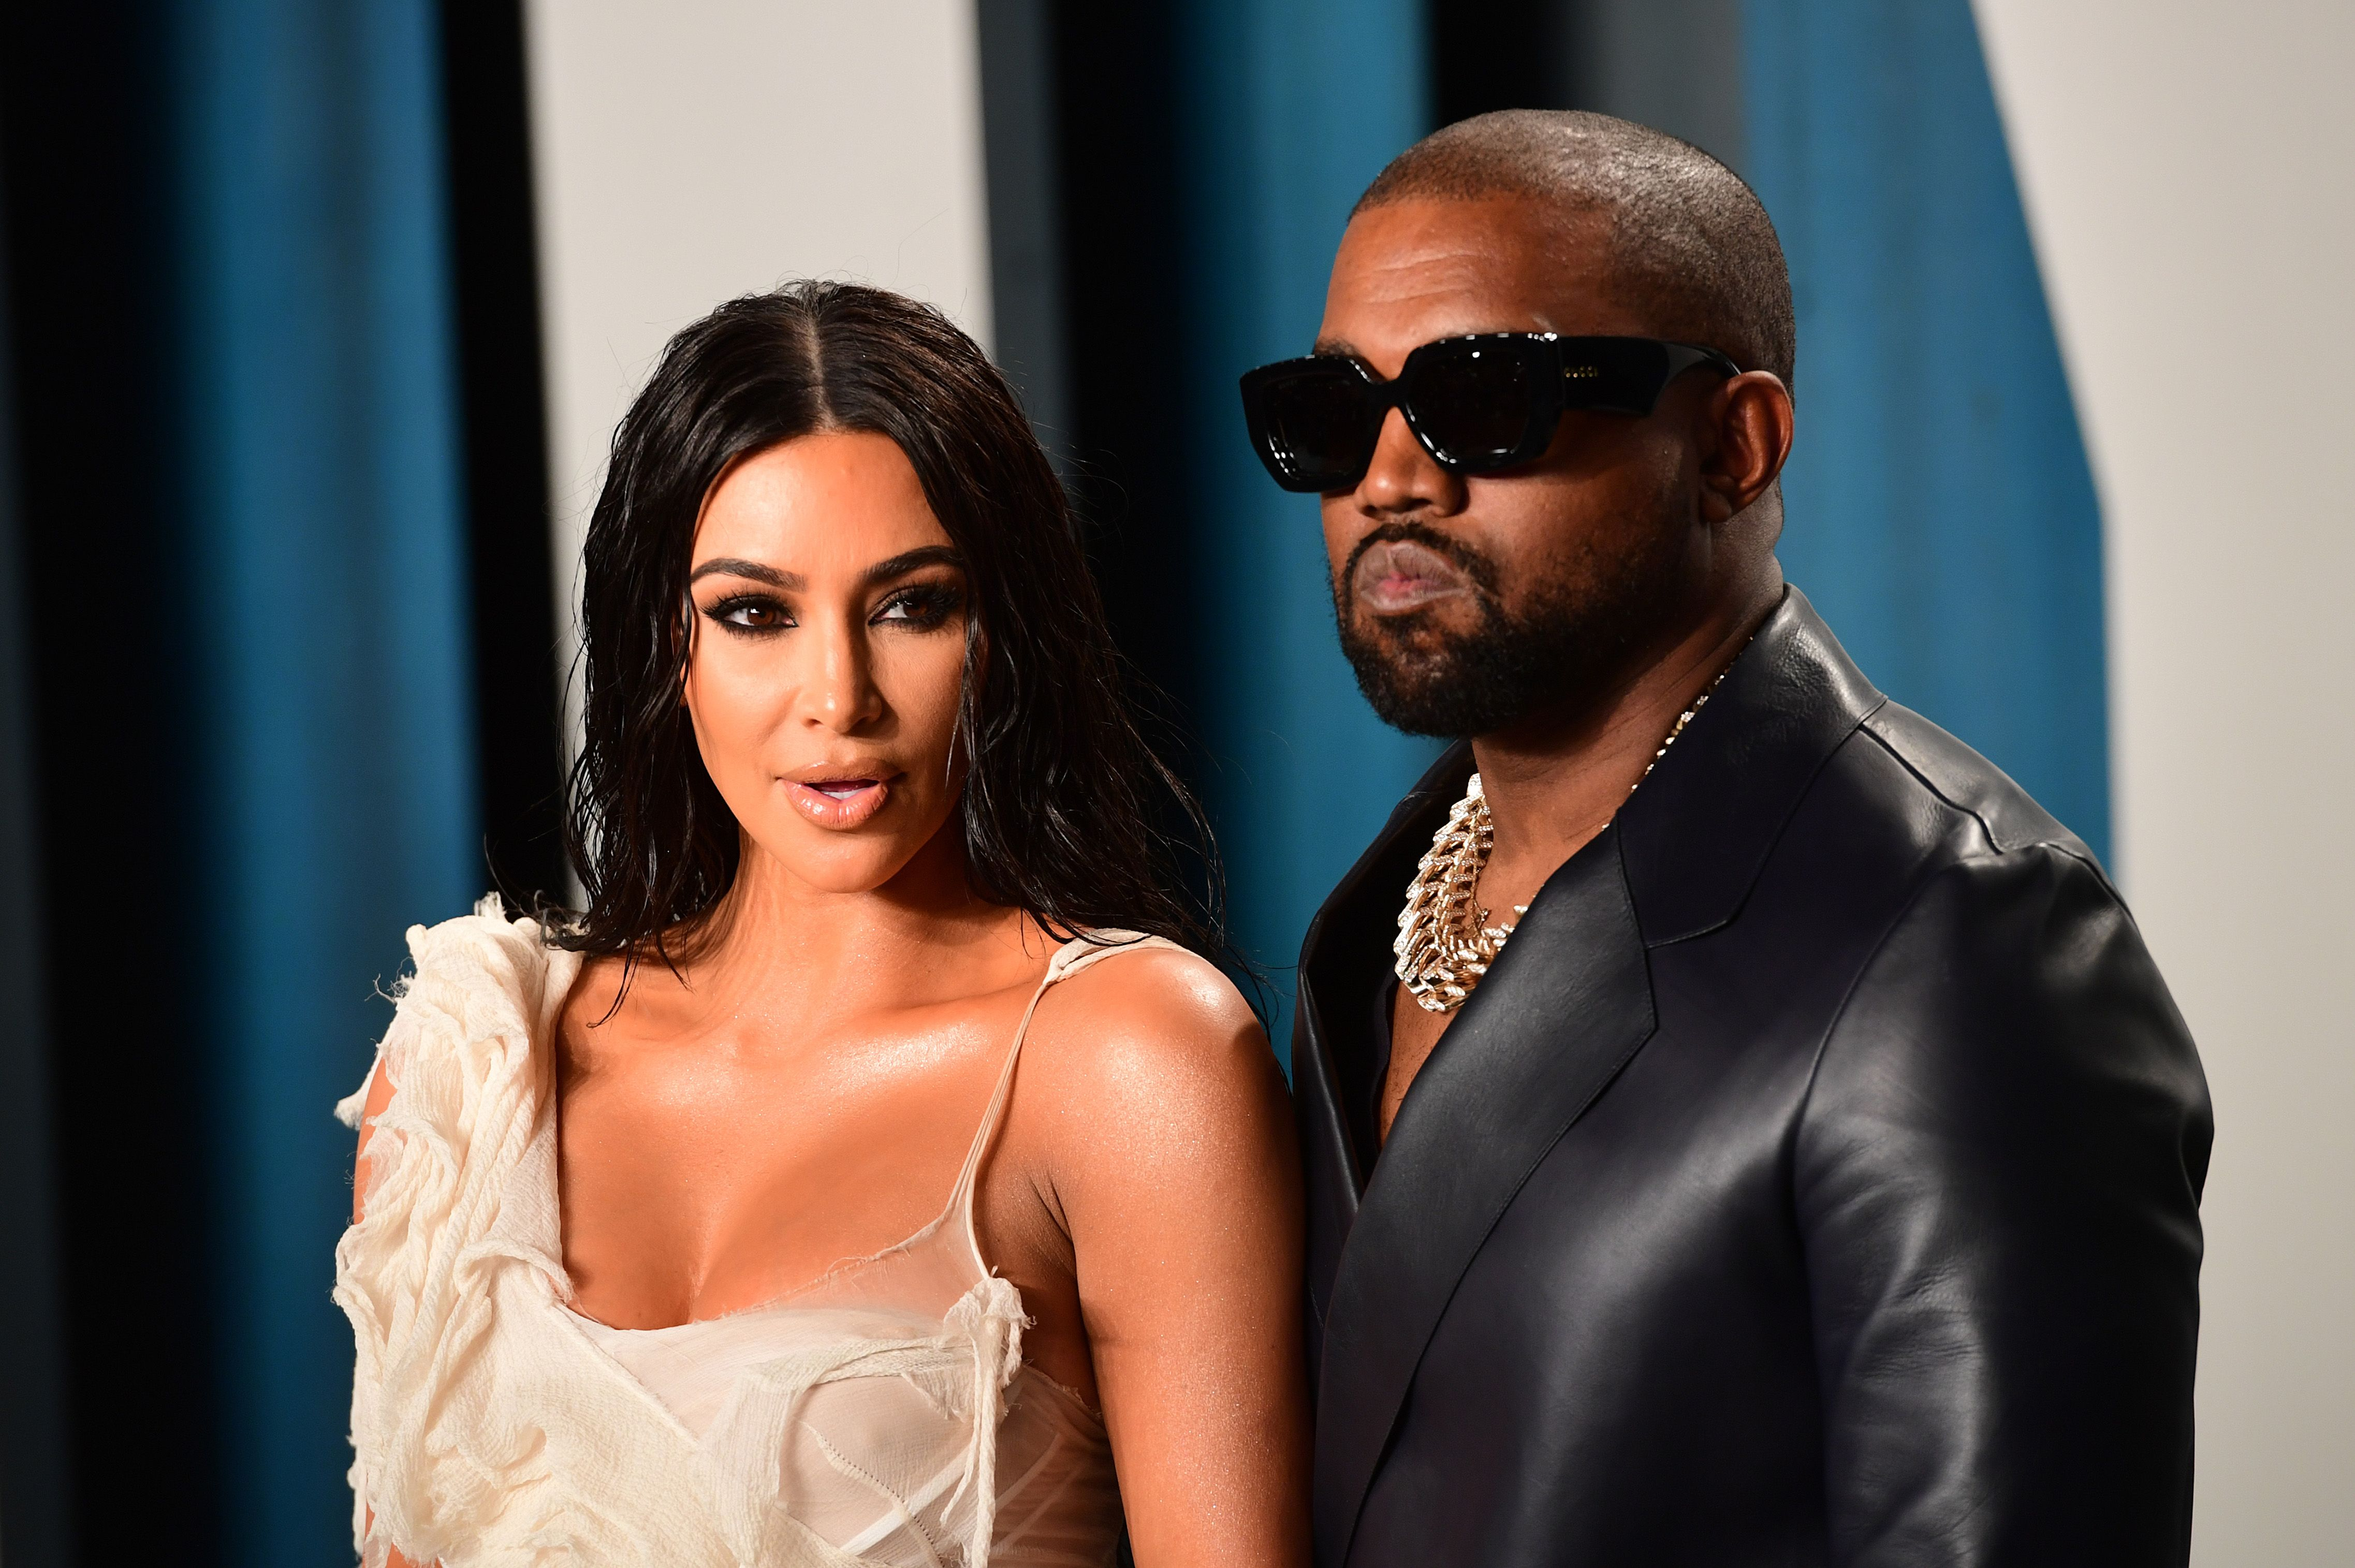 Kim Kardashian and Kanye West Shared a Romantic Moment — and Then He Left Her in an Elevator